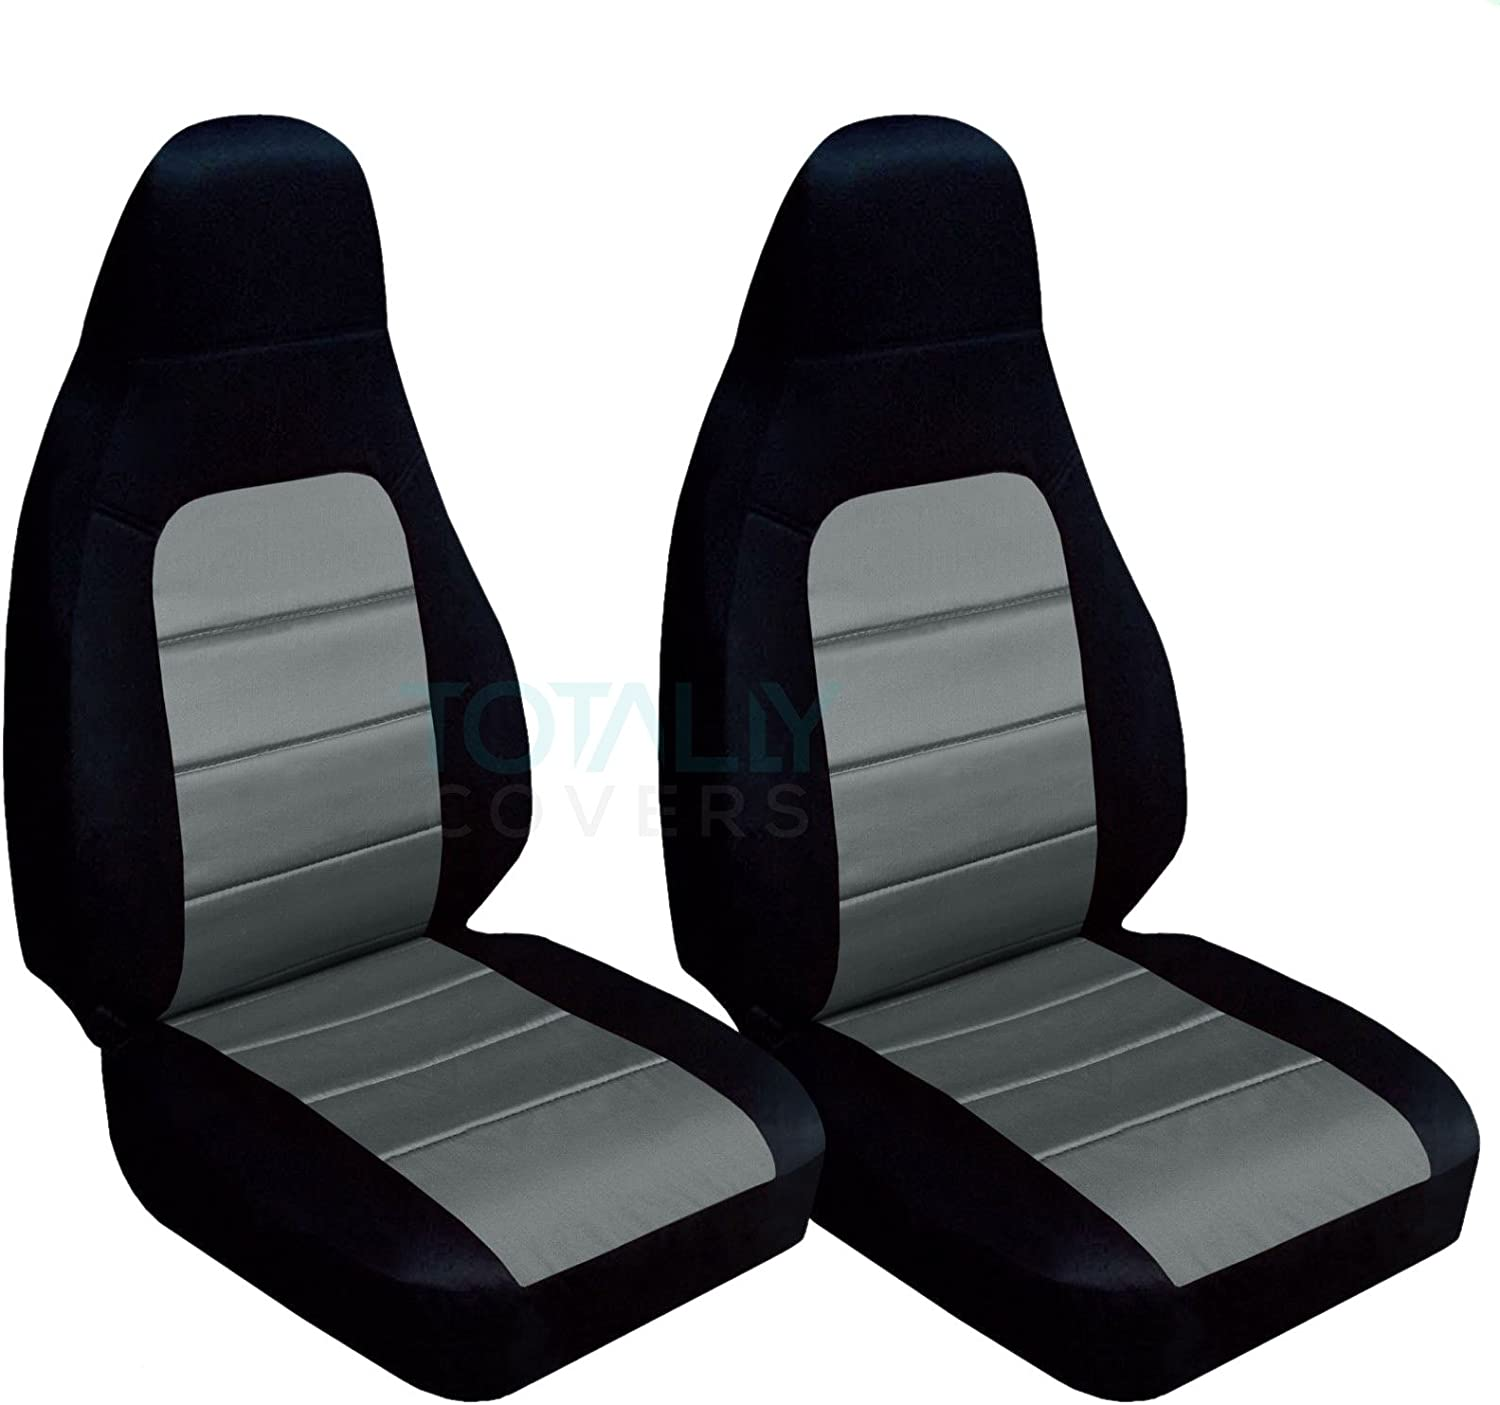 Black and Tan Totally Covers Compatible with 2001-2005 Mazda MX-5 Miata Seat Covers Bucket 22 Colors